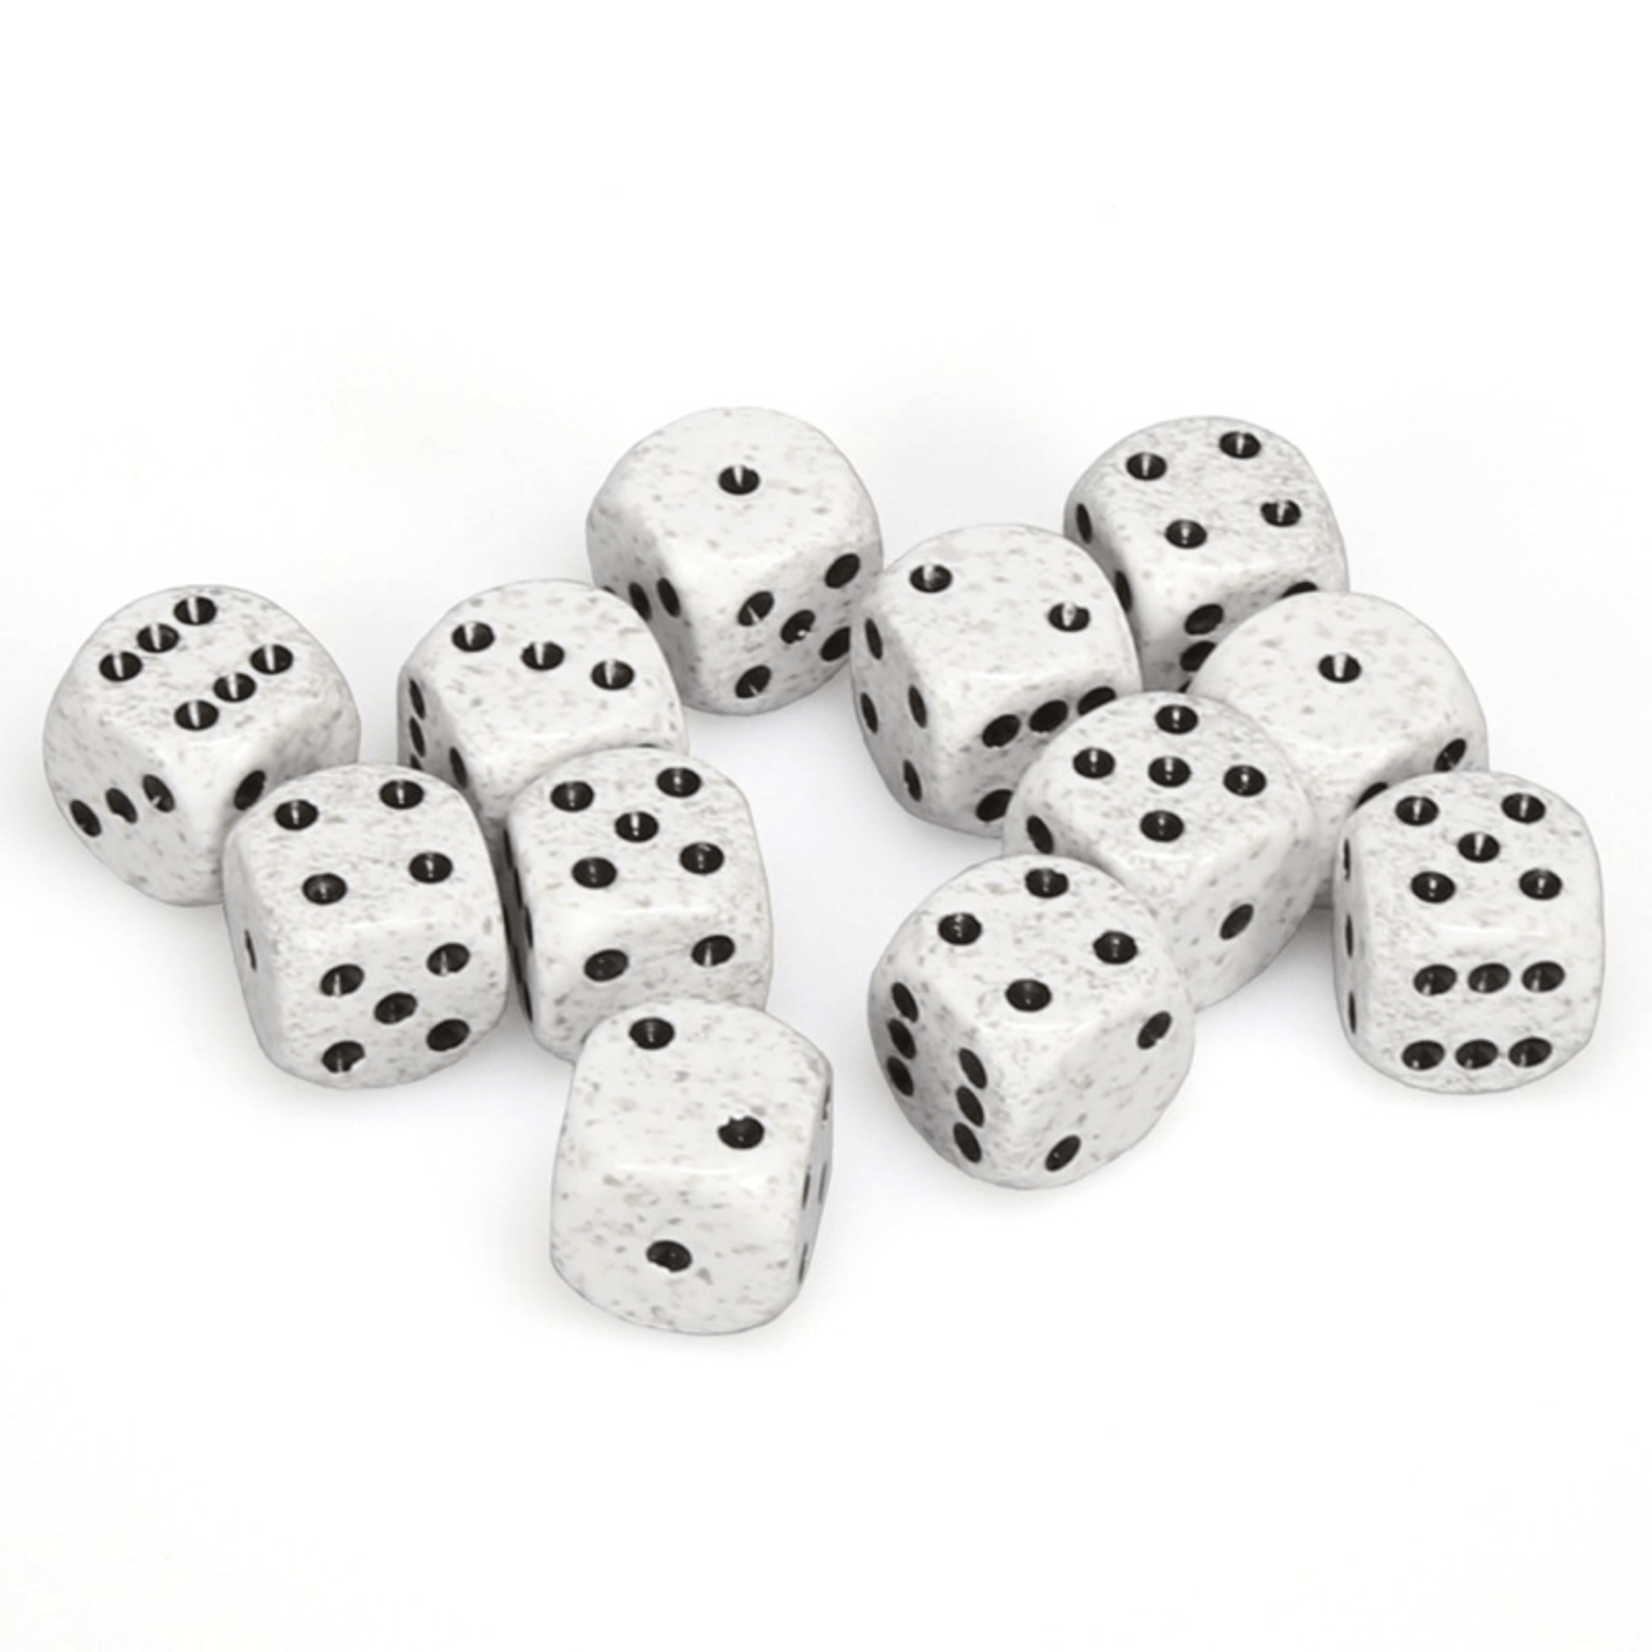 25711 Speckled 16mm D6 Arctic Camo